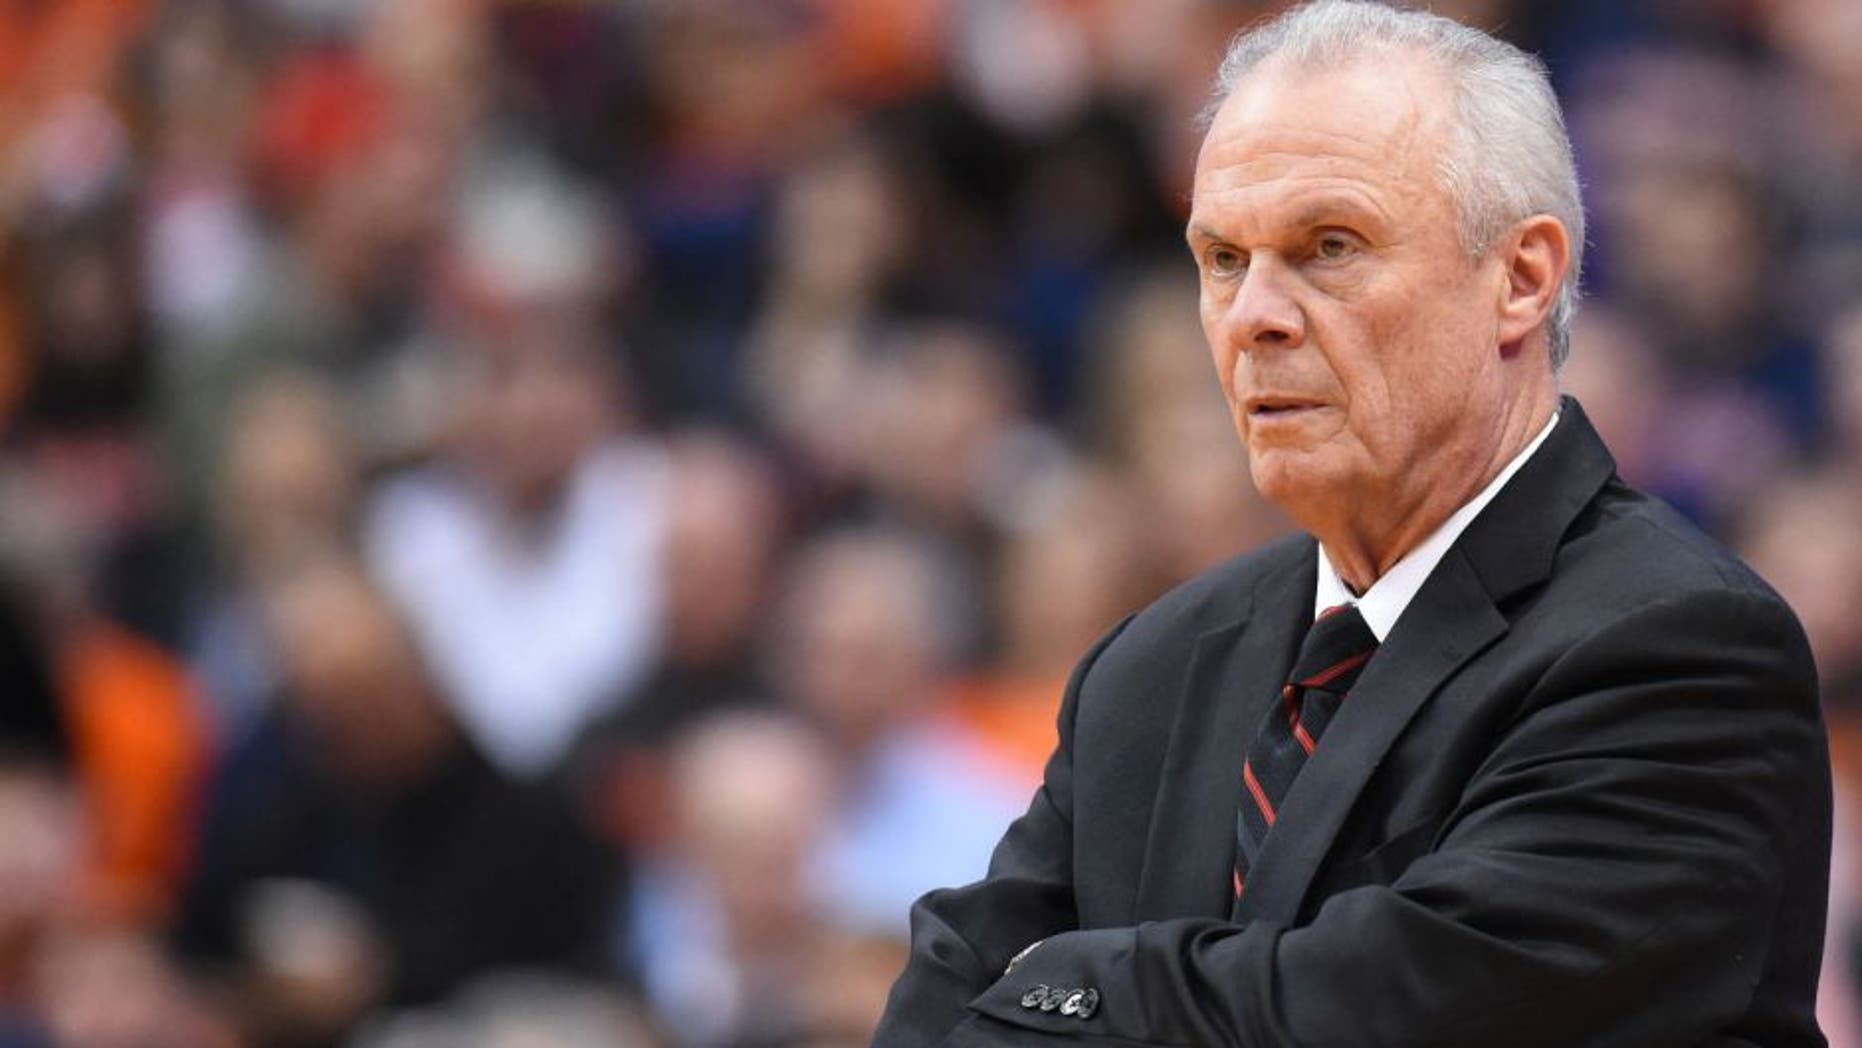 Former Wisconsin Badgers head coach Bo Ryan reacts to a play against the Syracuse Orange during the first half at the Carrier Dome.